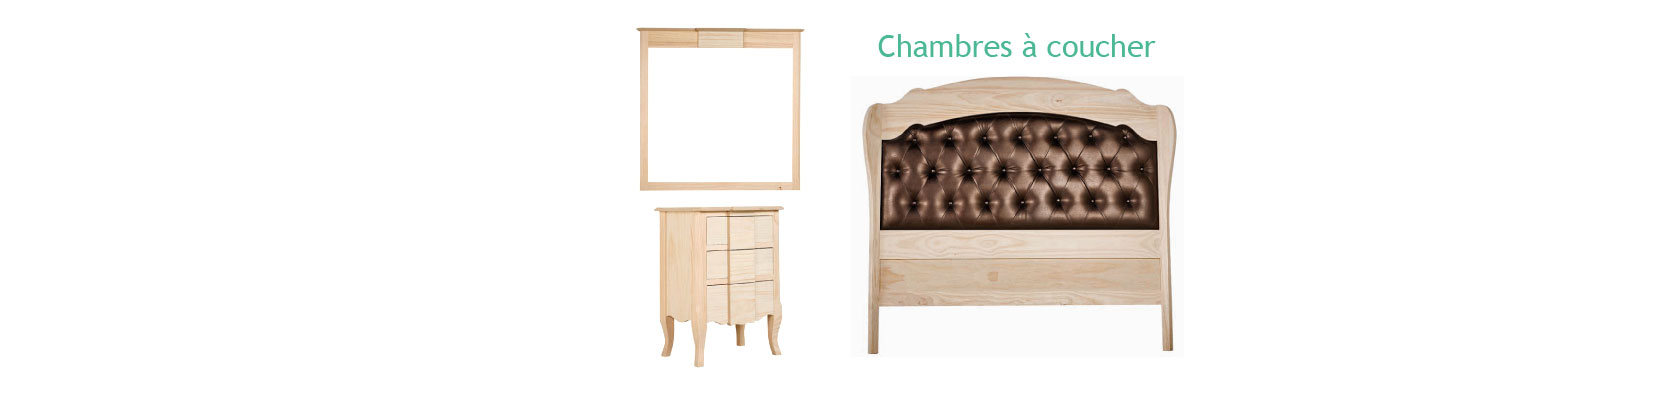 chambres-a-coucher-brut